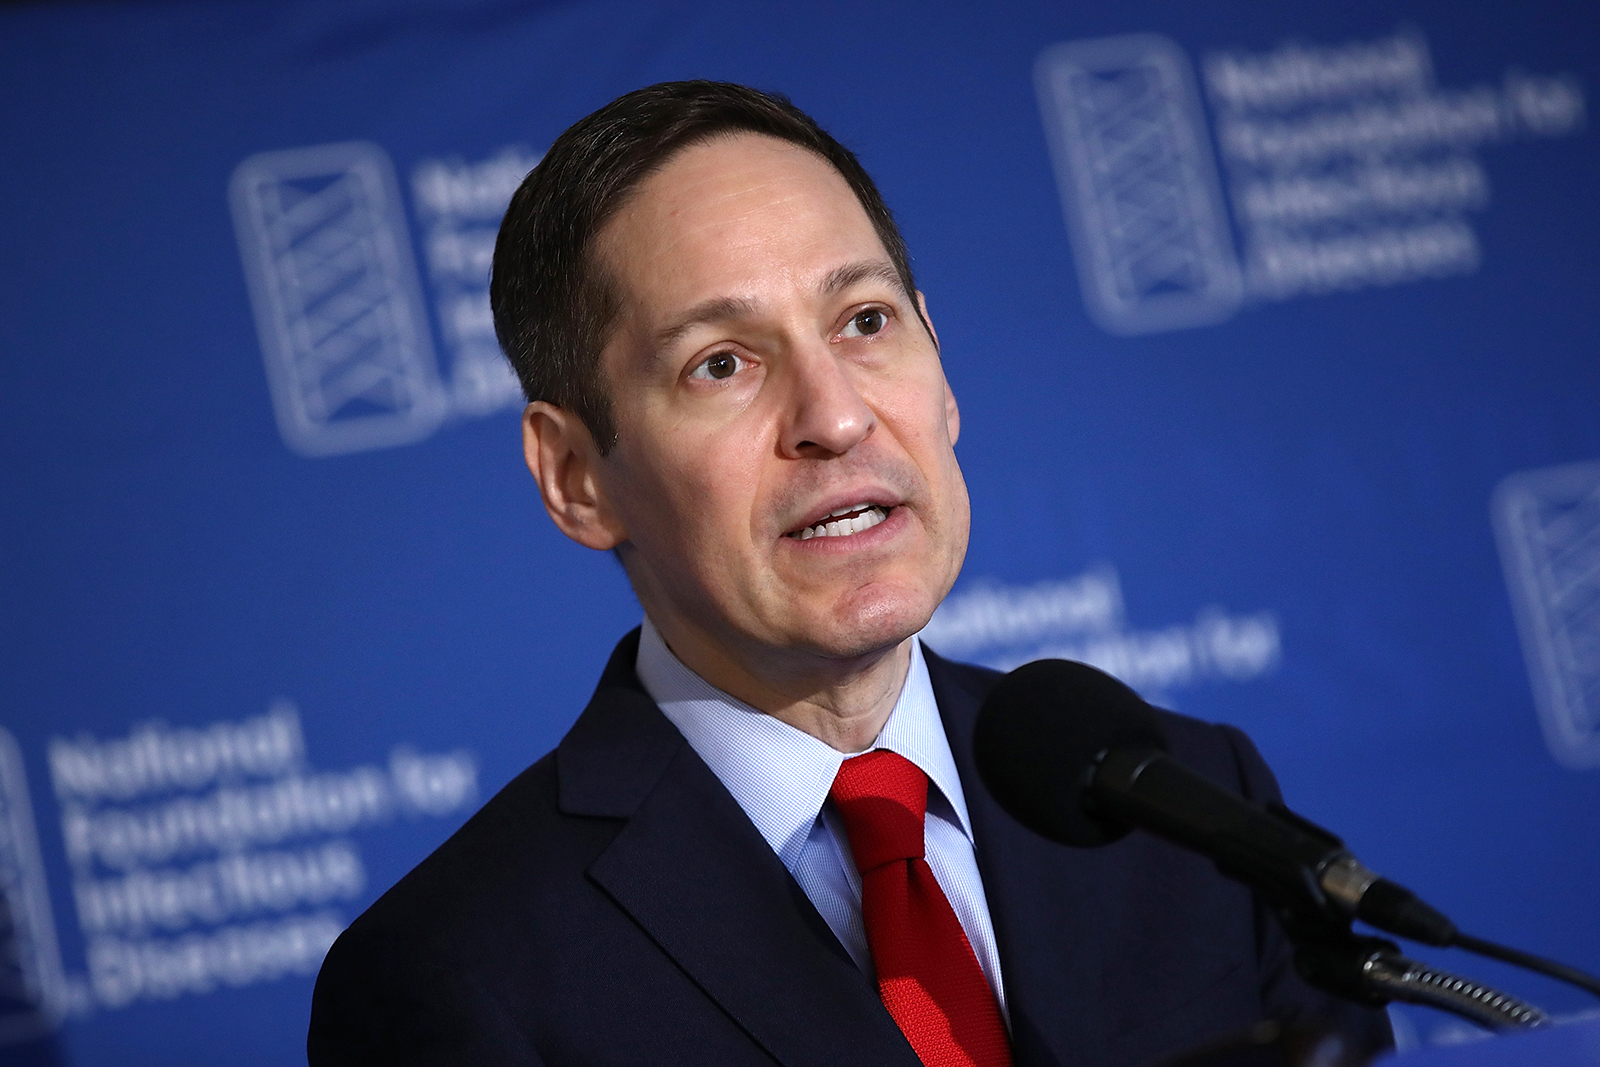 Dr. Tom Frieden, former director of the Centers for Disease Control and Prevention, delivers remarks during a press conference in Washington, DC on September 29, 2016.